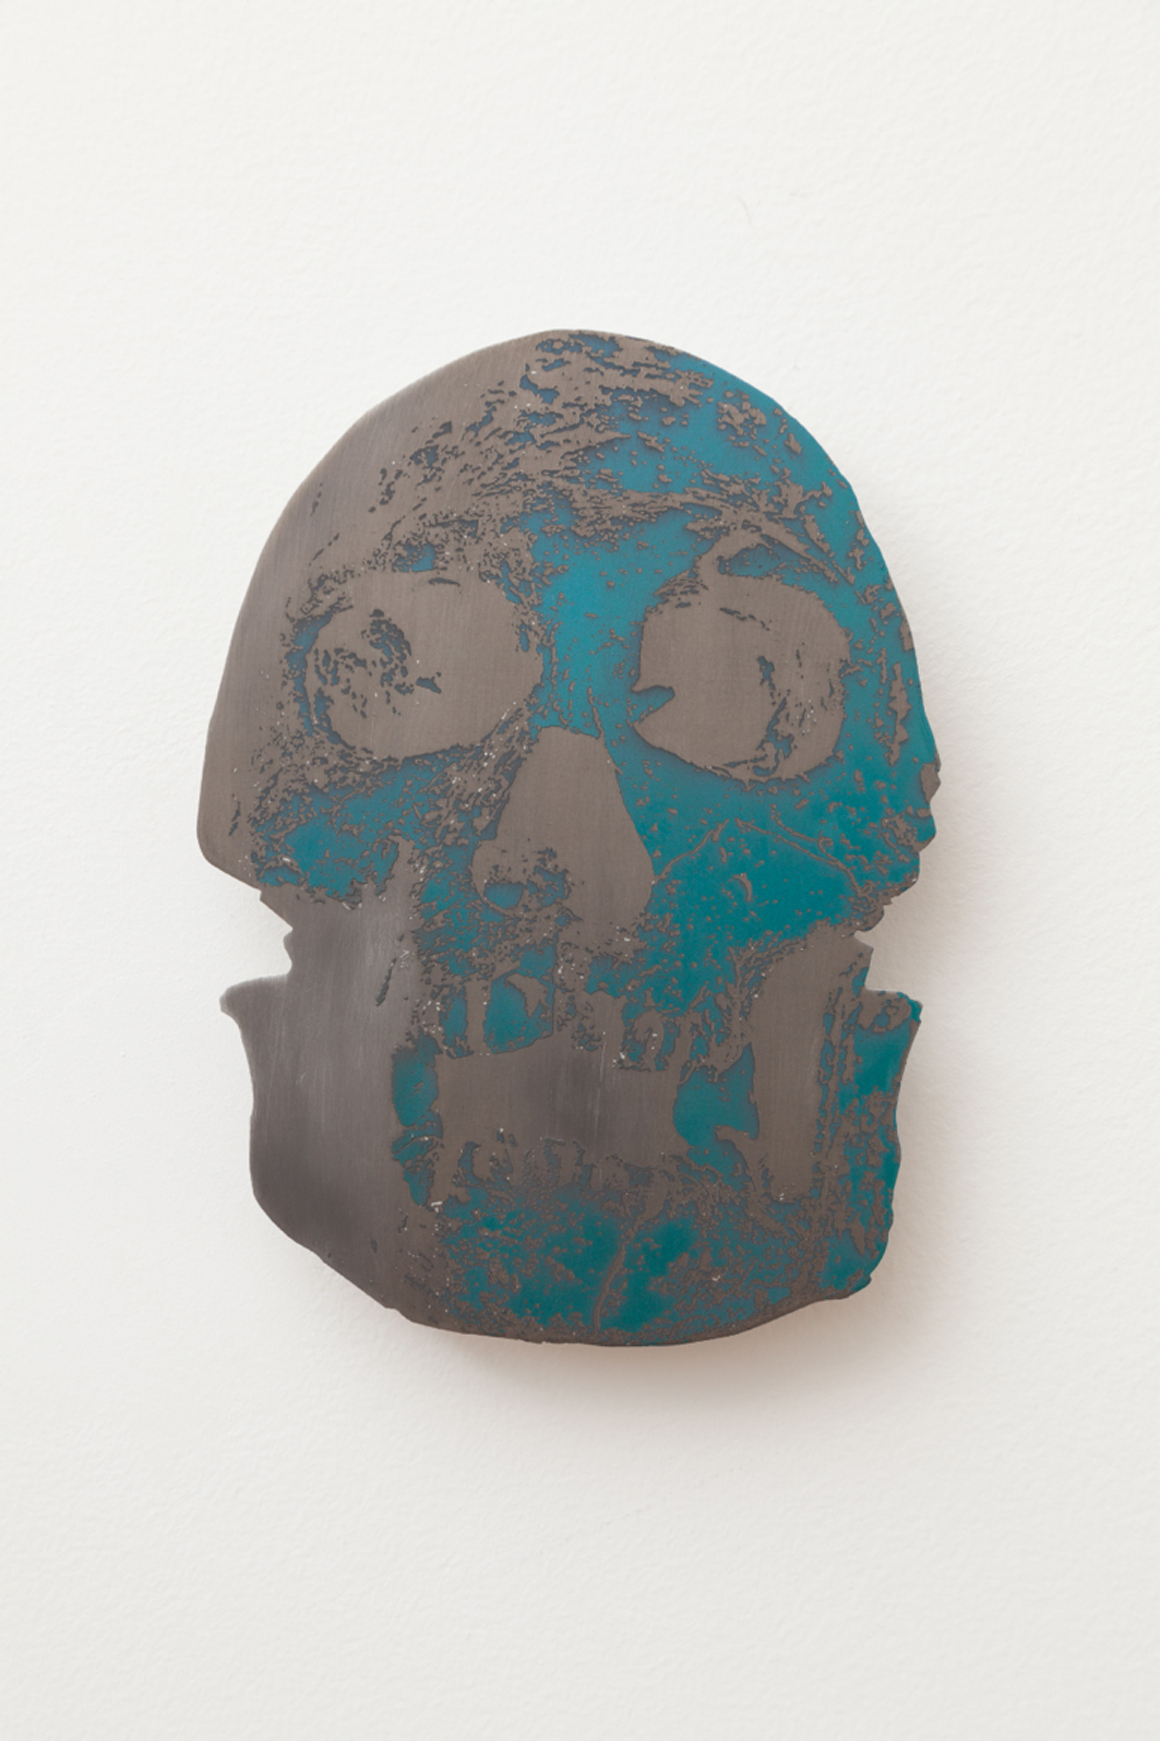 <p><em>Dmanisi skull</em><span class='media'>laser etched interference paint on aluminum</span>9 x 6 3/4in<br>2014<br><a class='inquire' href='mailto:info@gildargallery.com?subject=Artwork Inquiry DOBE0010&body=I am interested in finding out more about Dmanisi skull by Dmitri Obergfell'>Inquire</a></p>